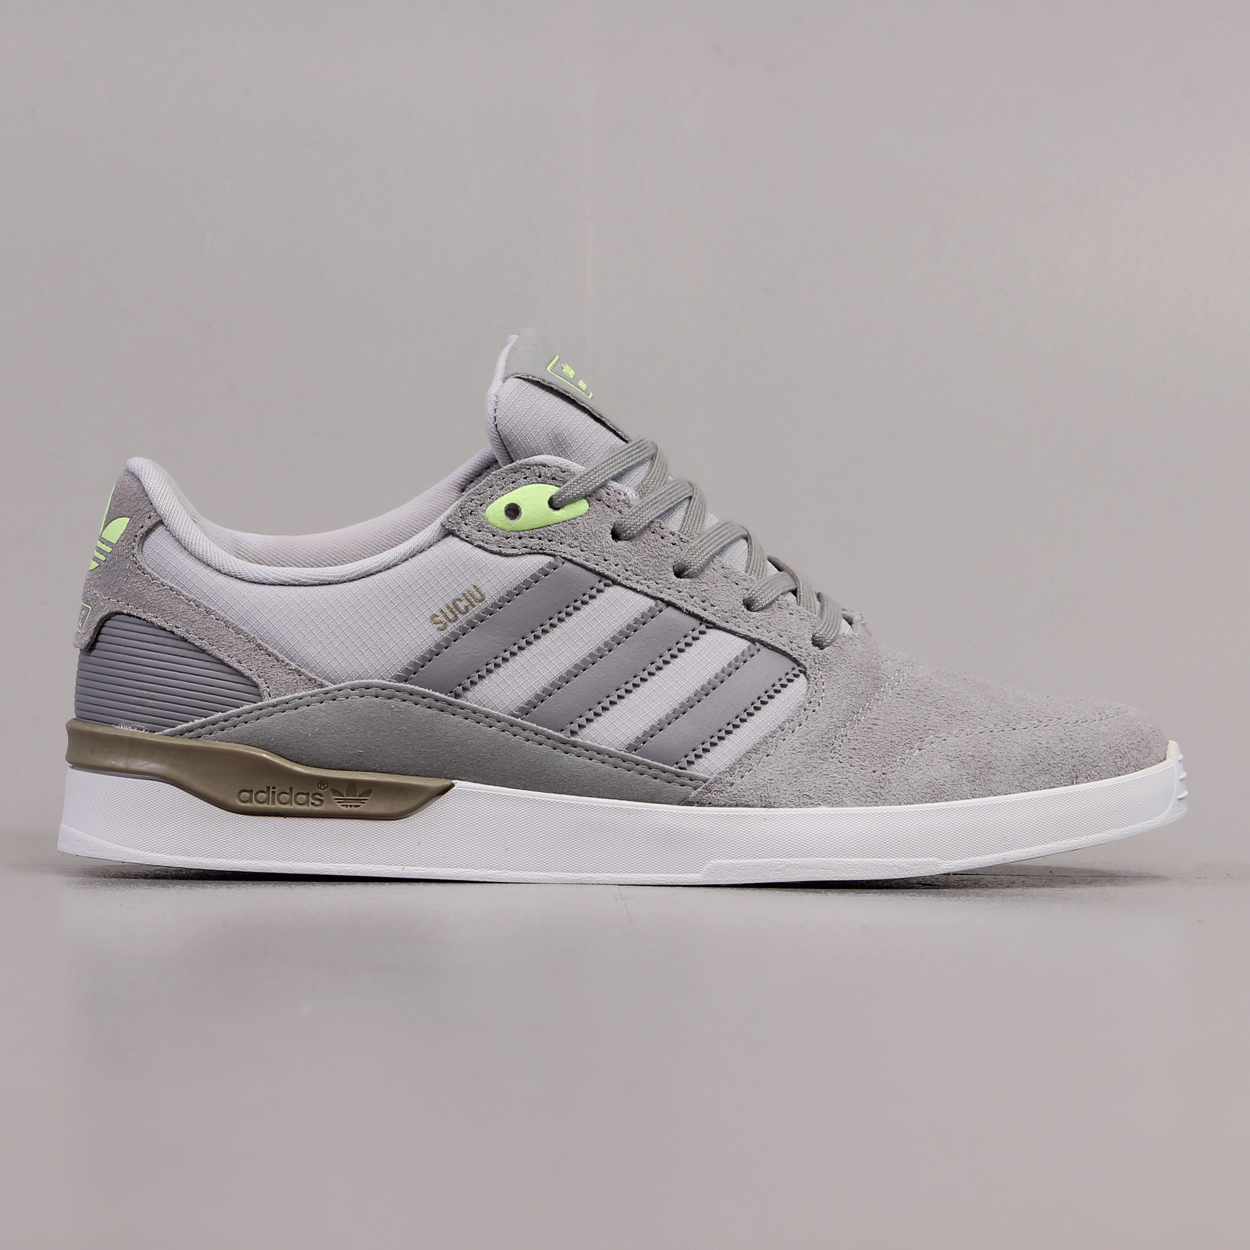 ... Adidas ZX Vulc Skate Mark Suciu Shoes Solid Grey Light Onix Grey £67.00  ...